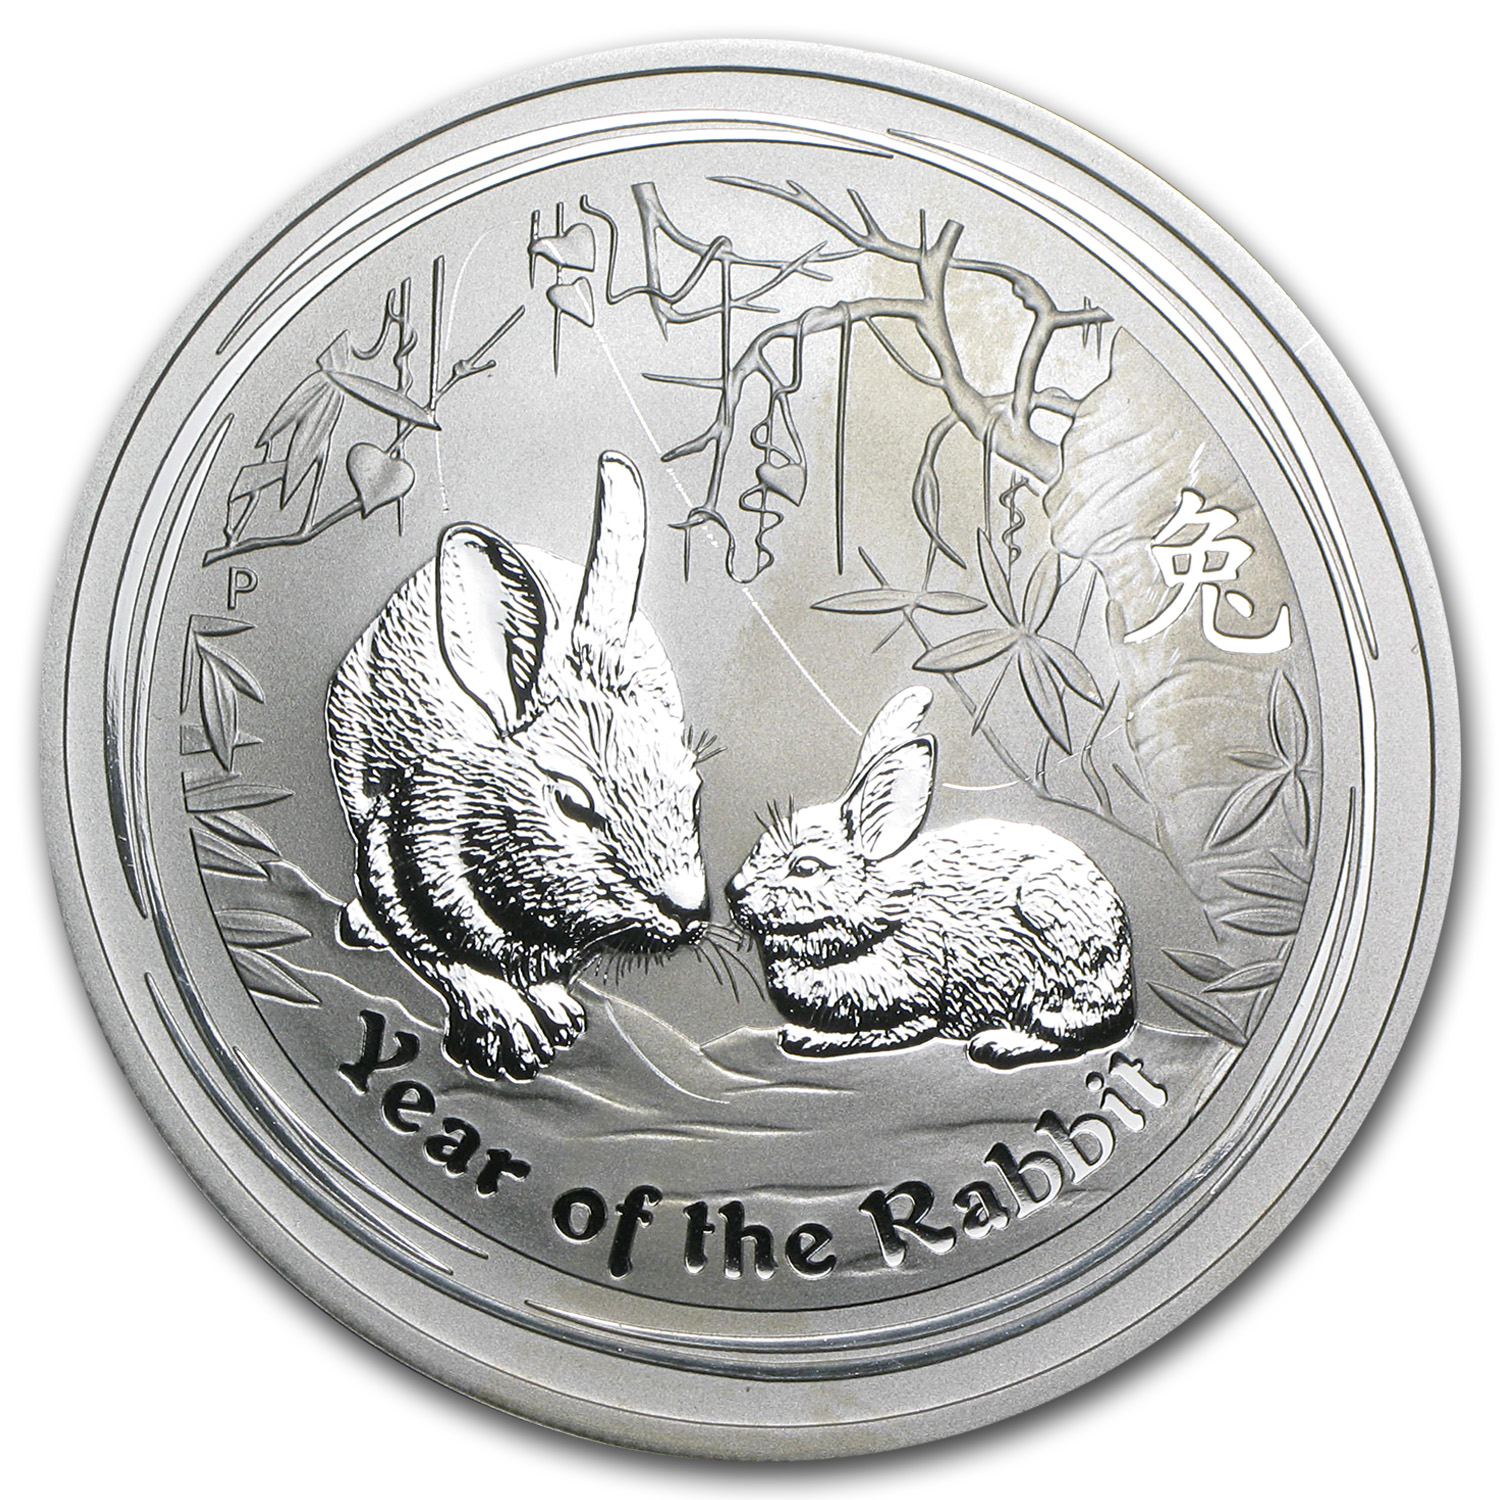 2011 2 oz Silver Australian Year of the Rabbit Coin (Abrasions)